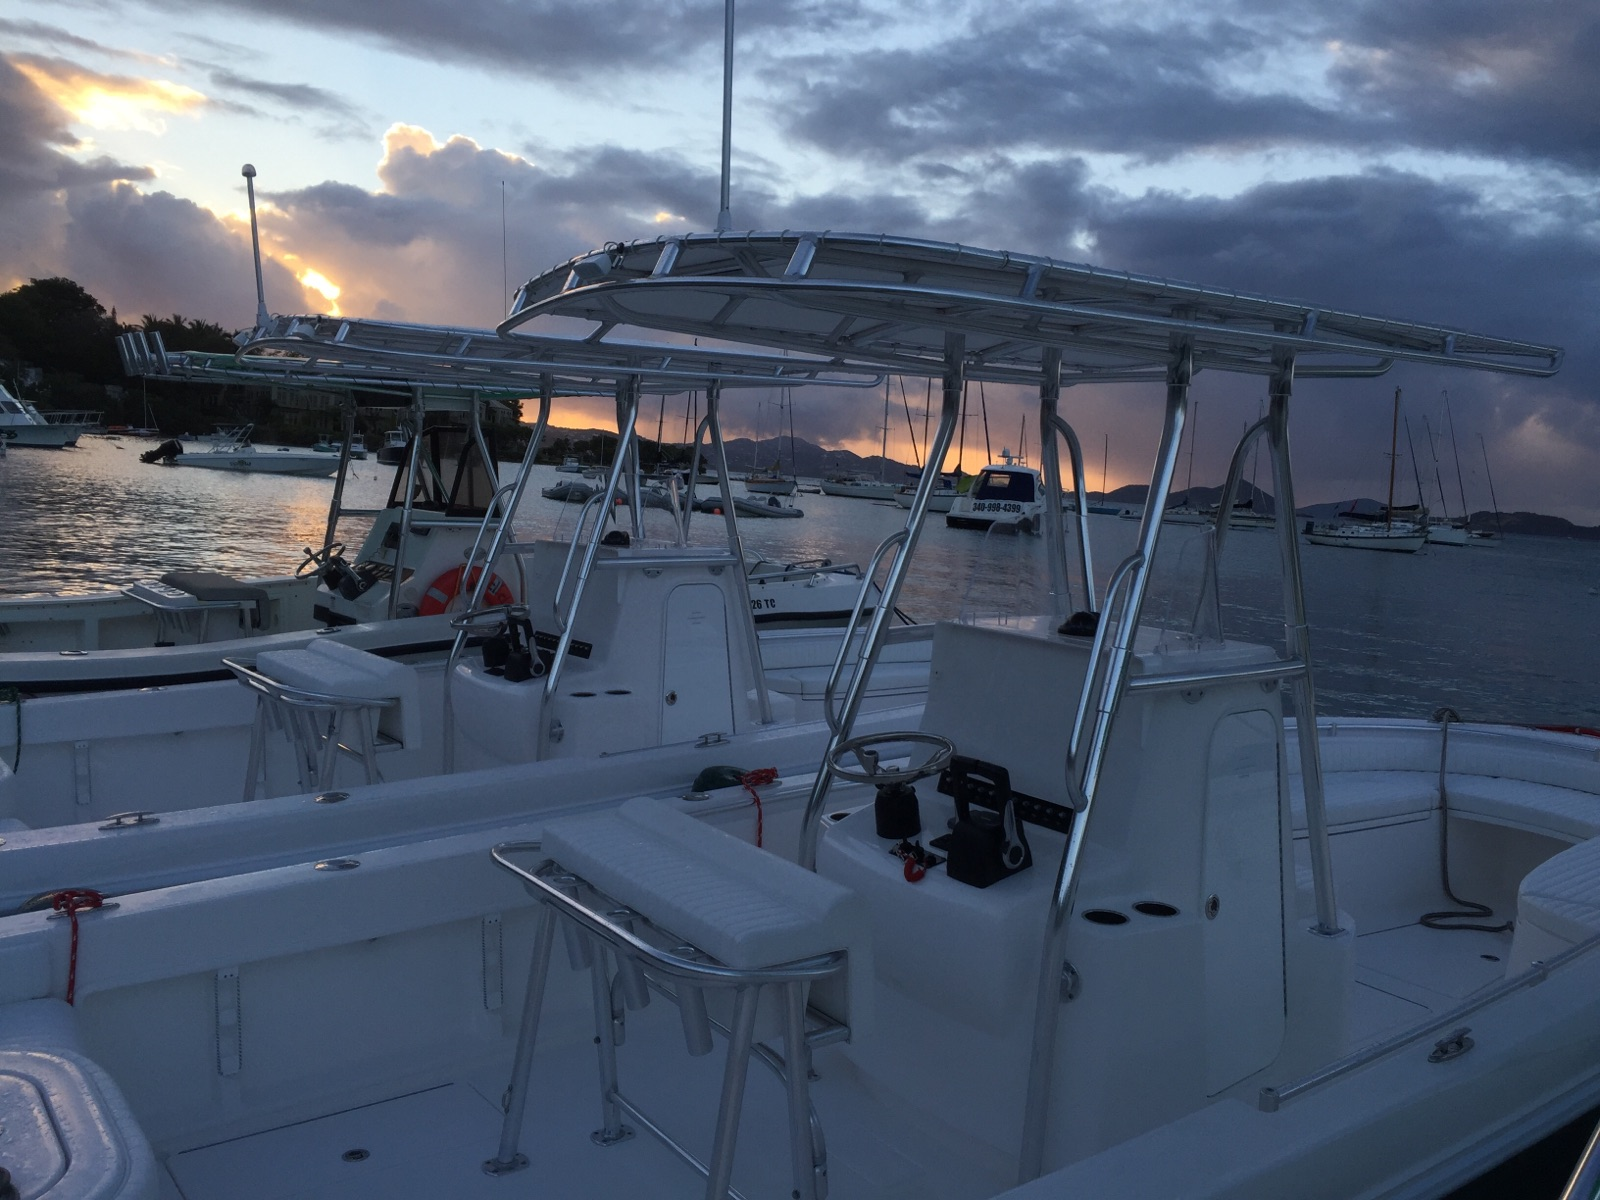 This is a photo of our newest Contender powerboats at sunset rafted up in Cruz Bay